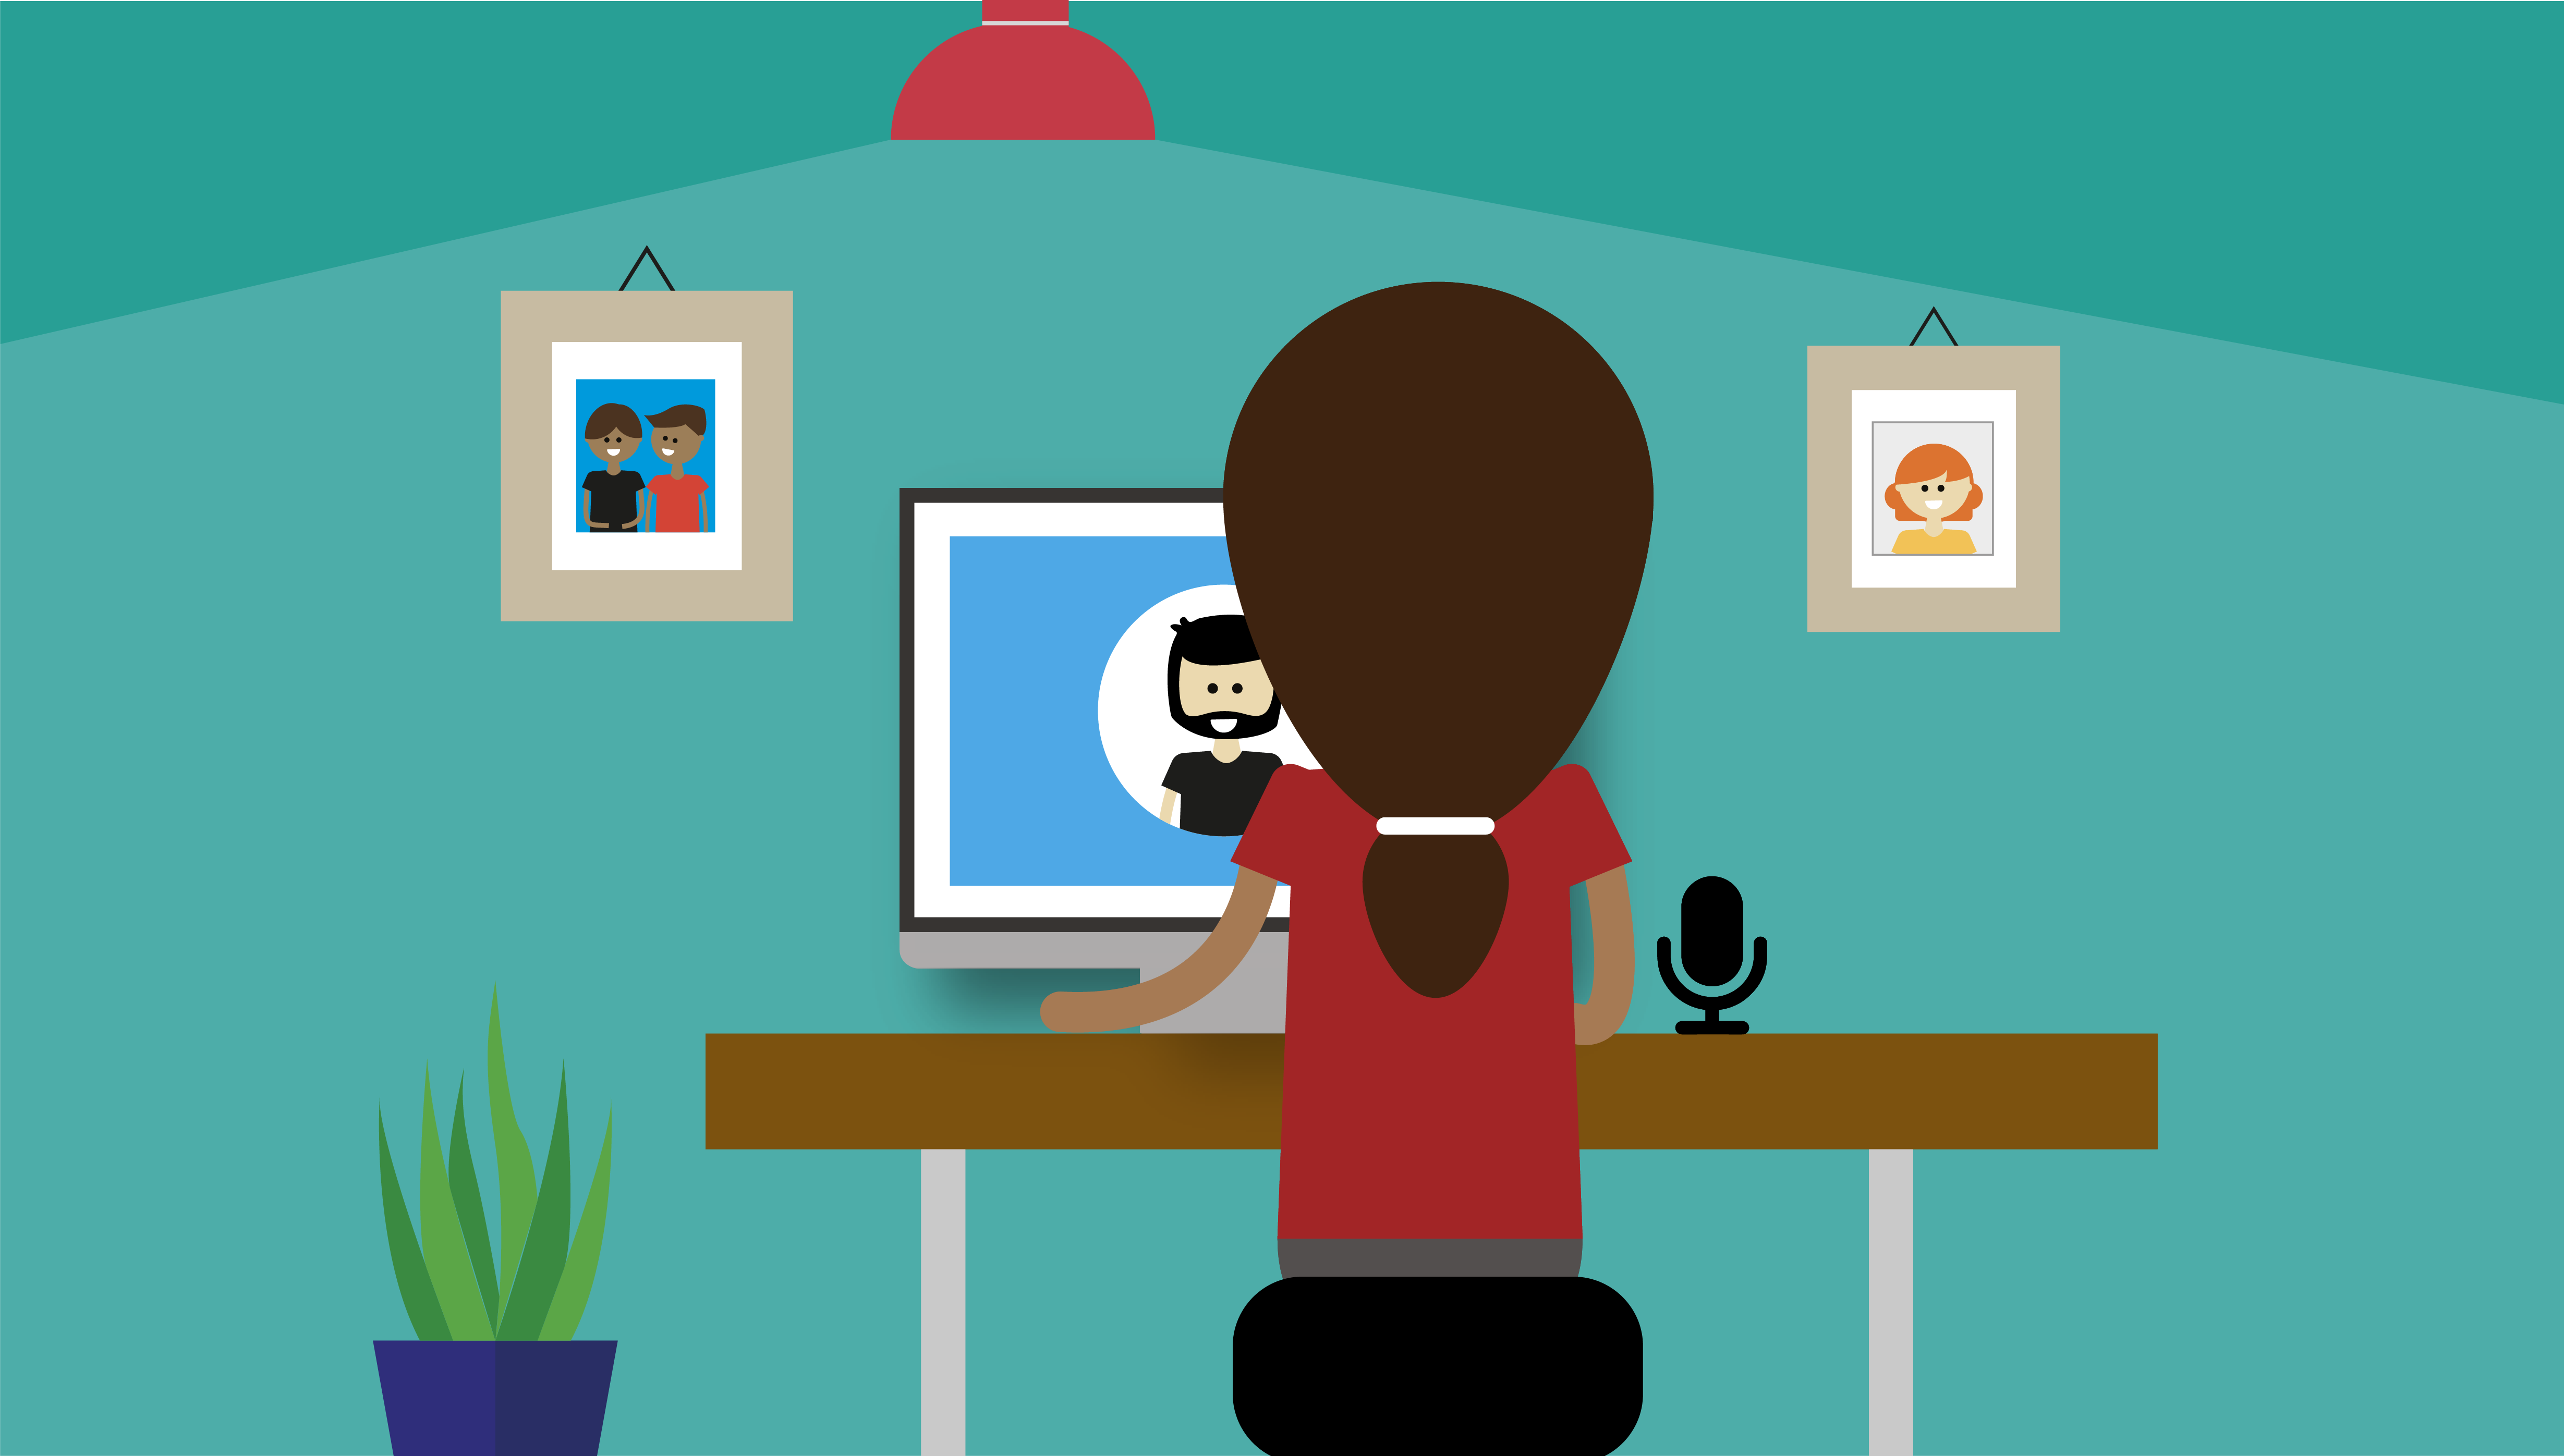 Illustrated graphic showing someone having a video interview at a desk. There is a microphone on the desk, and the oter person appears on their computer screen.